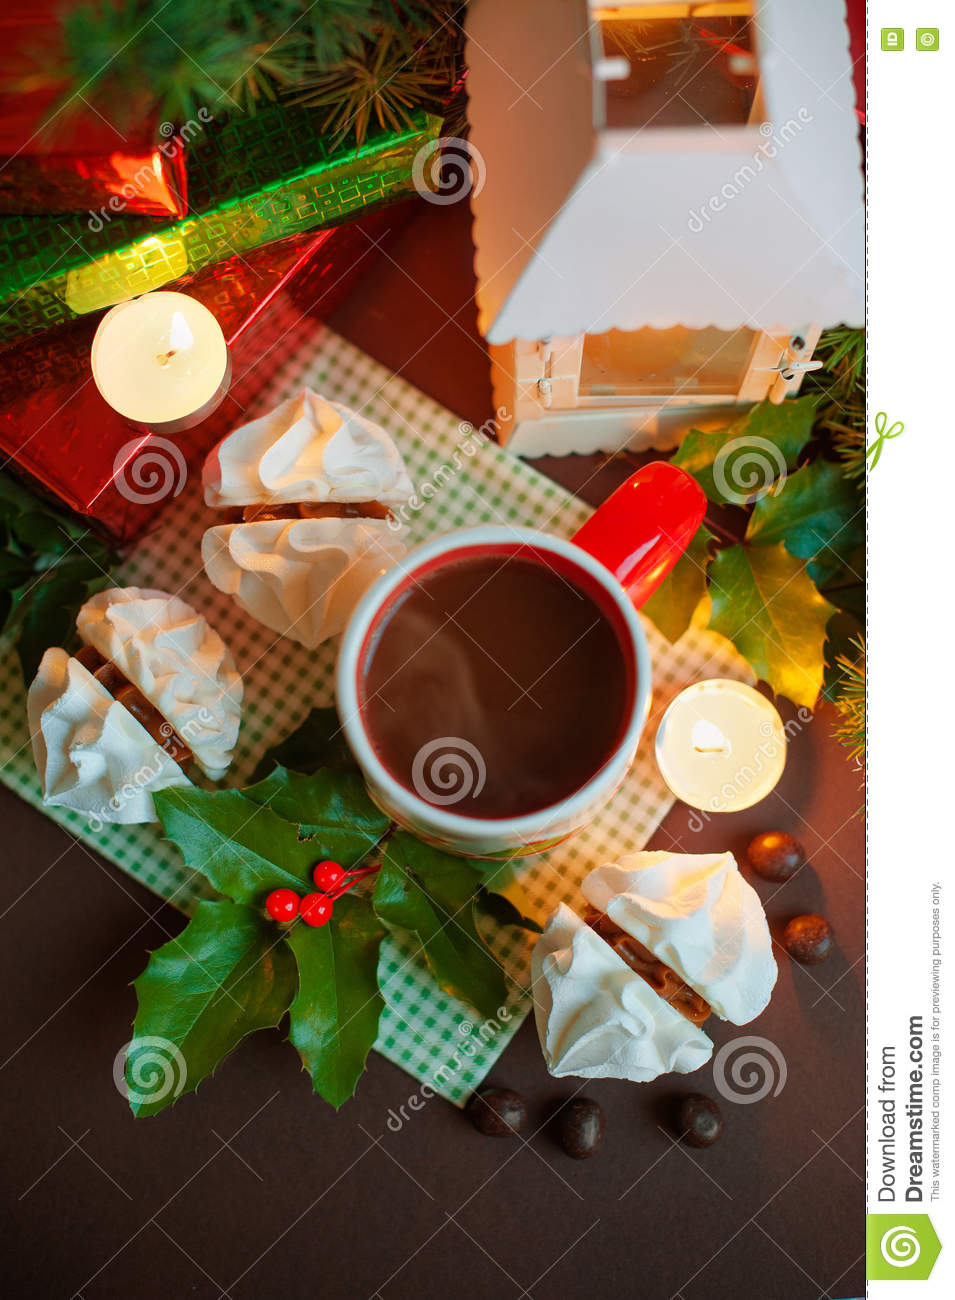 Christmas festive composition - a mug with Santa Klais, cakes, candles, branches of holly, berries and boxes gifts on